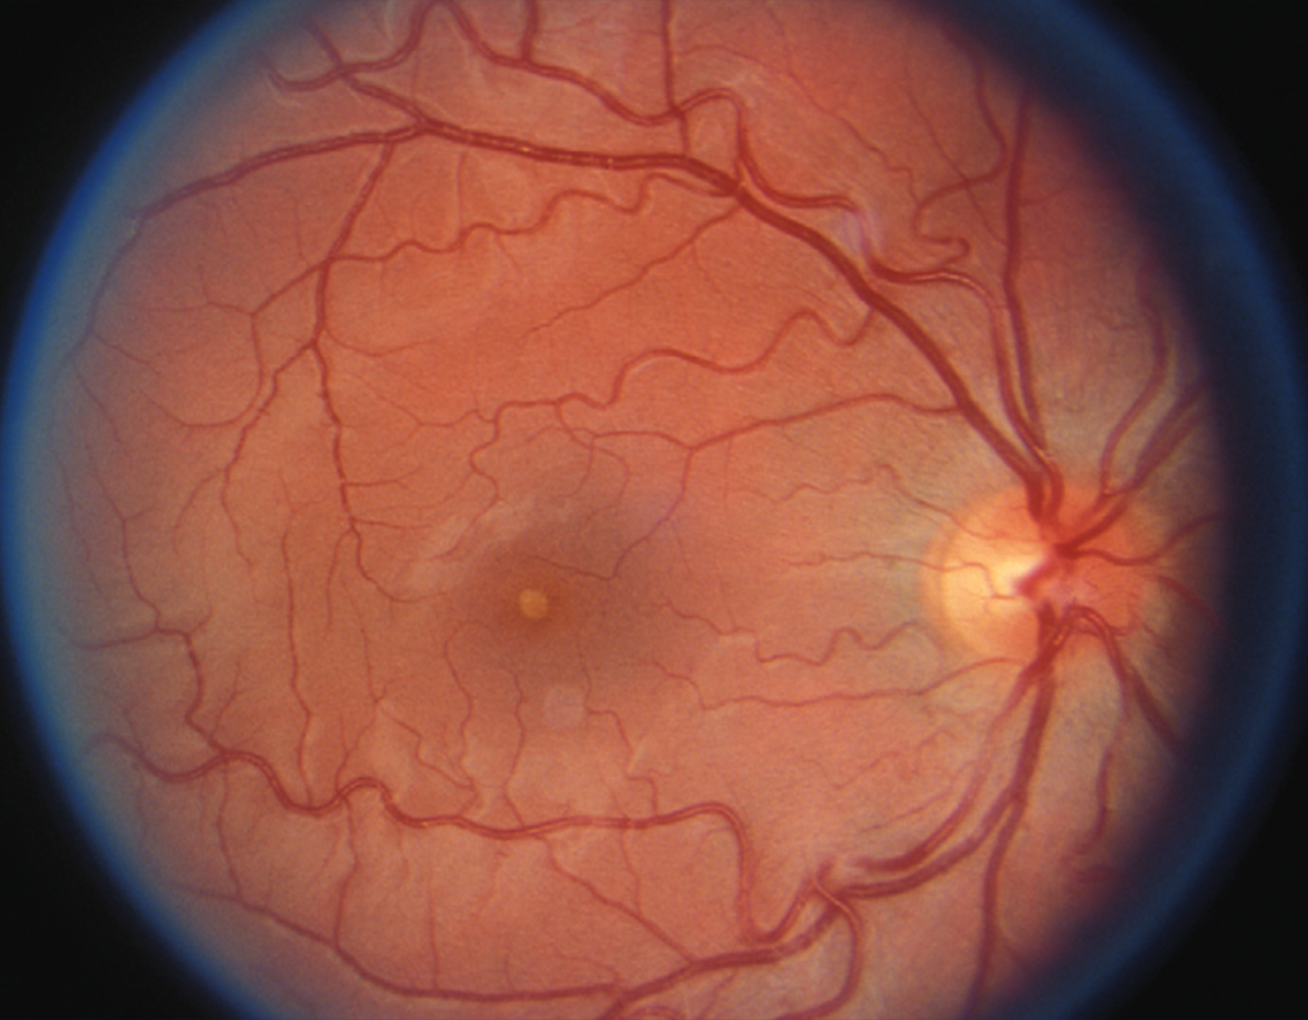 Bio - Dr. Edward A. Ryan MD PCDiseases and Surgery of the Retina